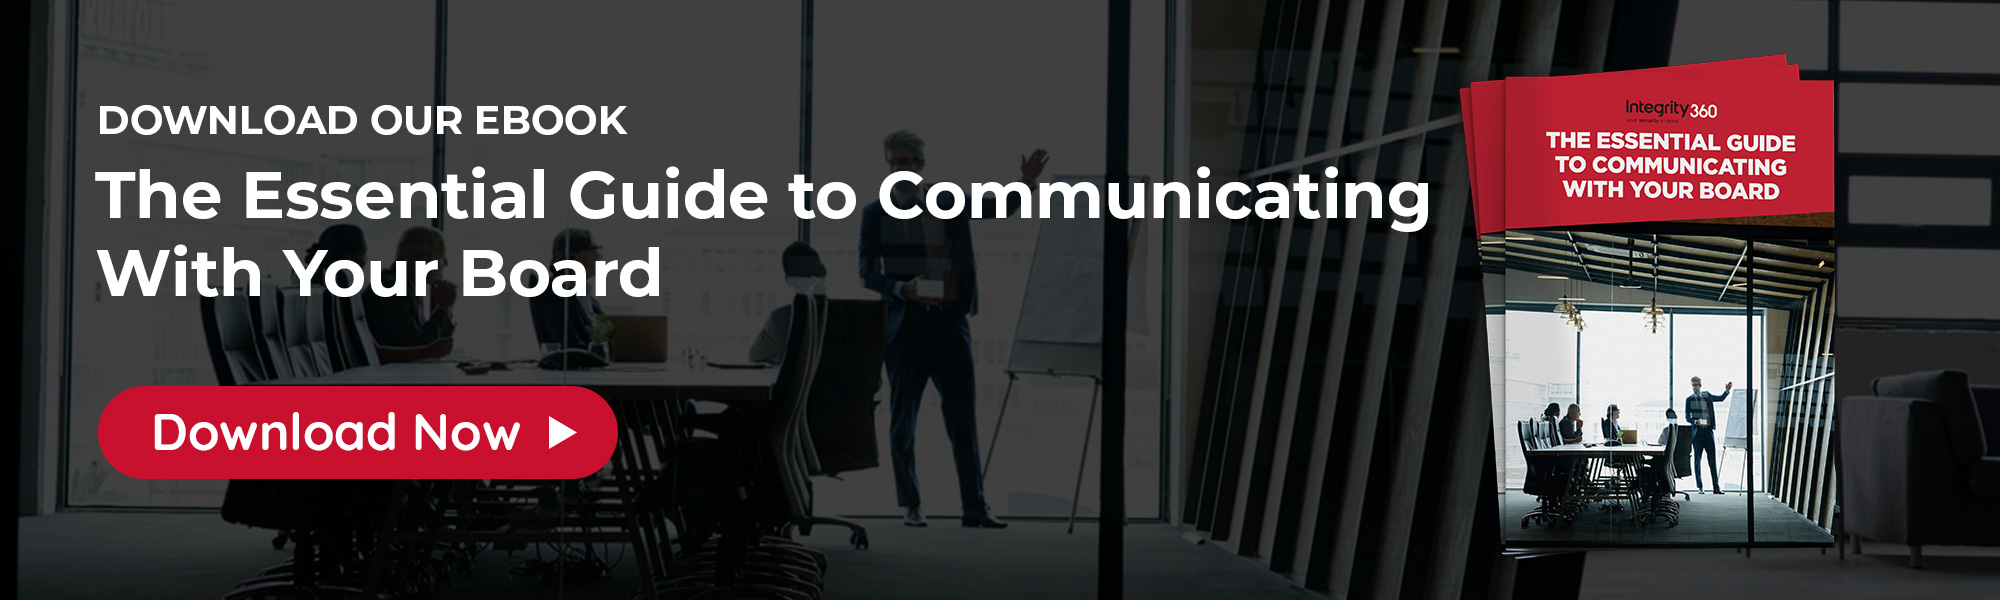 Integrity360 Essential Guide to Communicating with your Board eBook